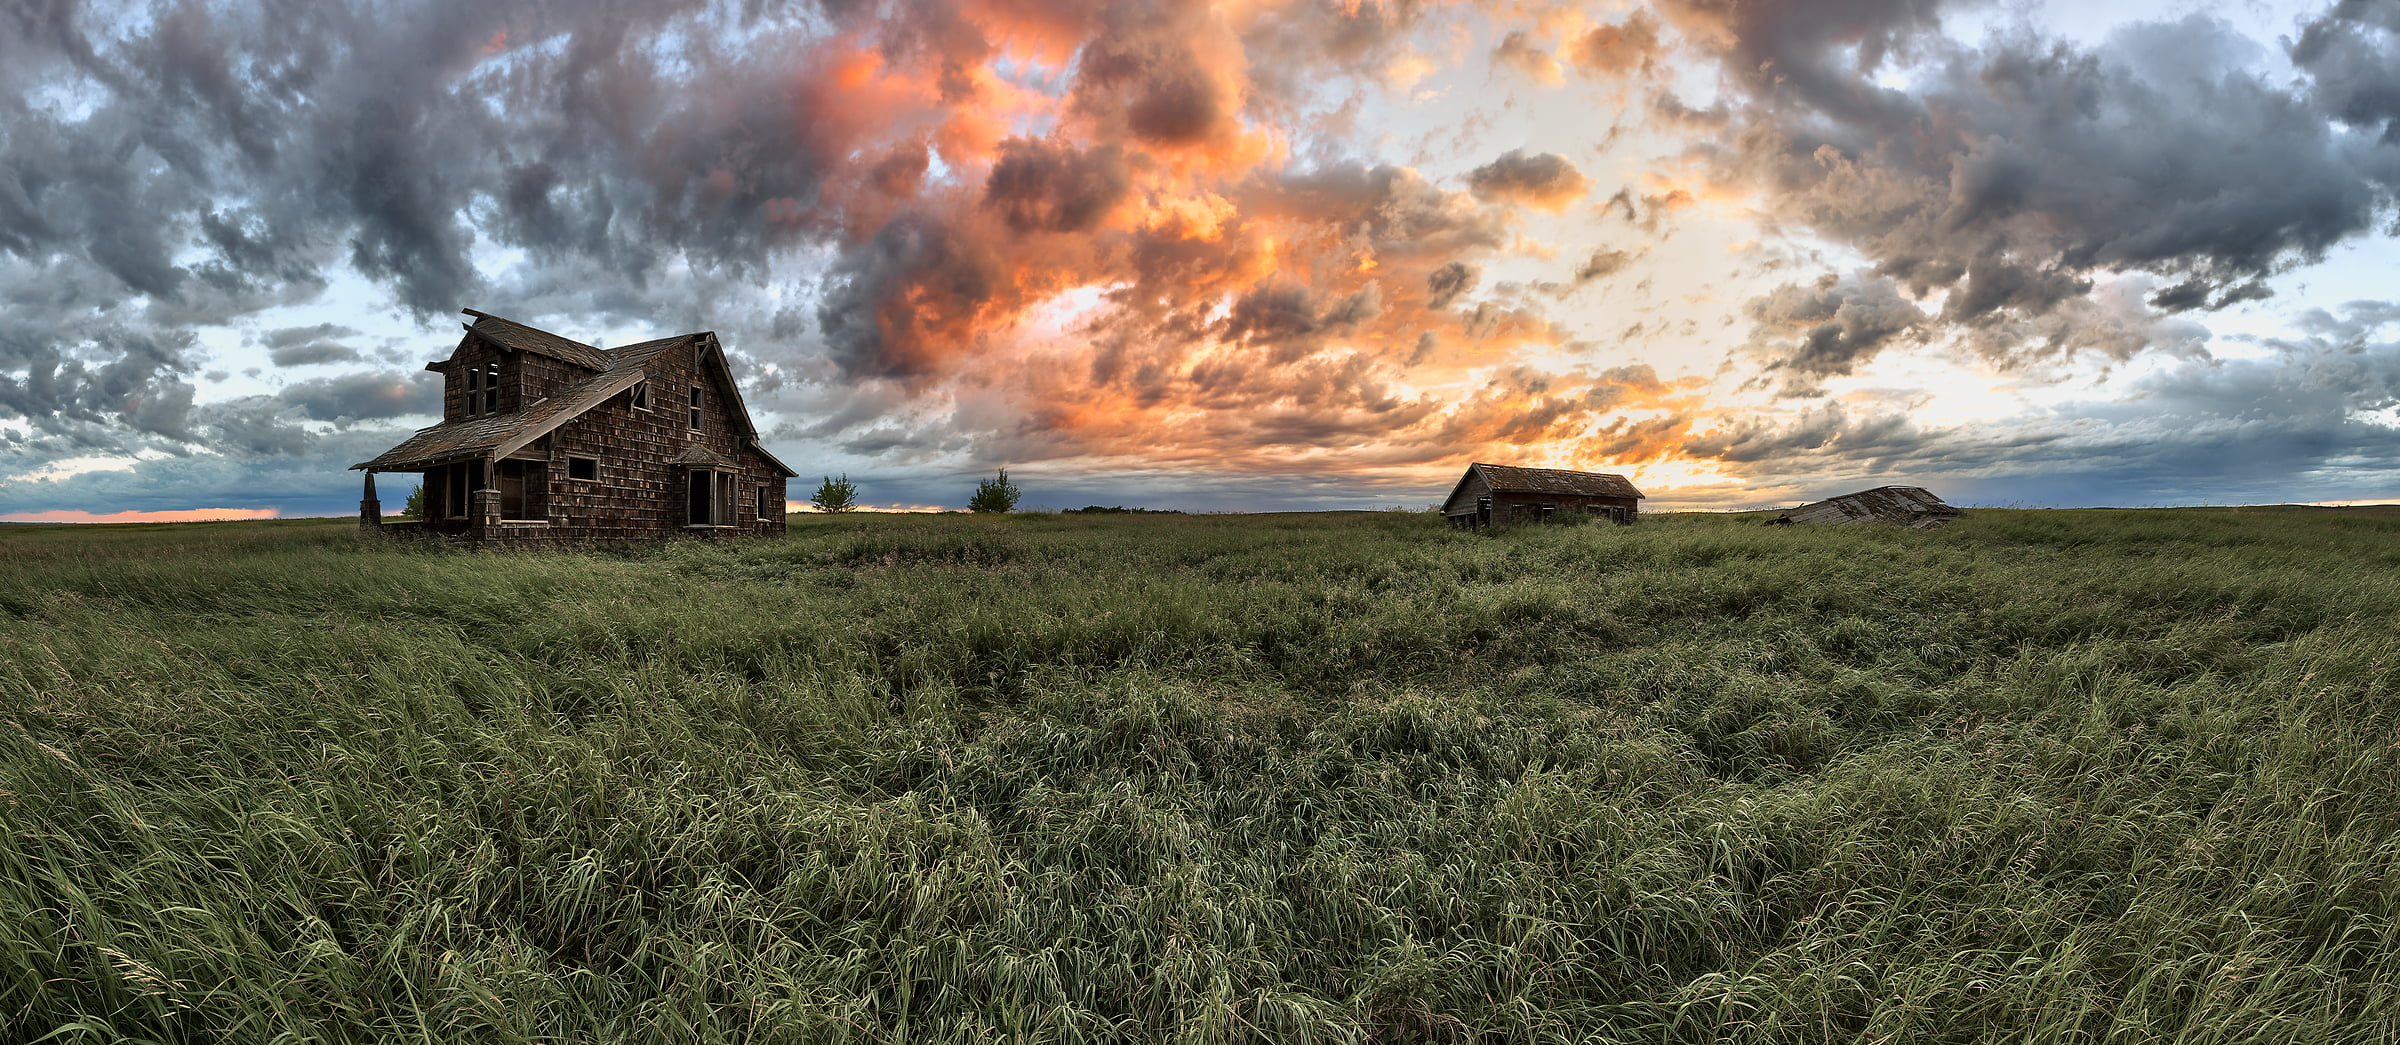 74 megapixels! A very high resolution, large-format VAST photo of farmland, grasslands, the prairie, and an old abandoned house; fine art landscape photo created at sunrise by Scott Dimond on the Great Plains in Alberta, Canada